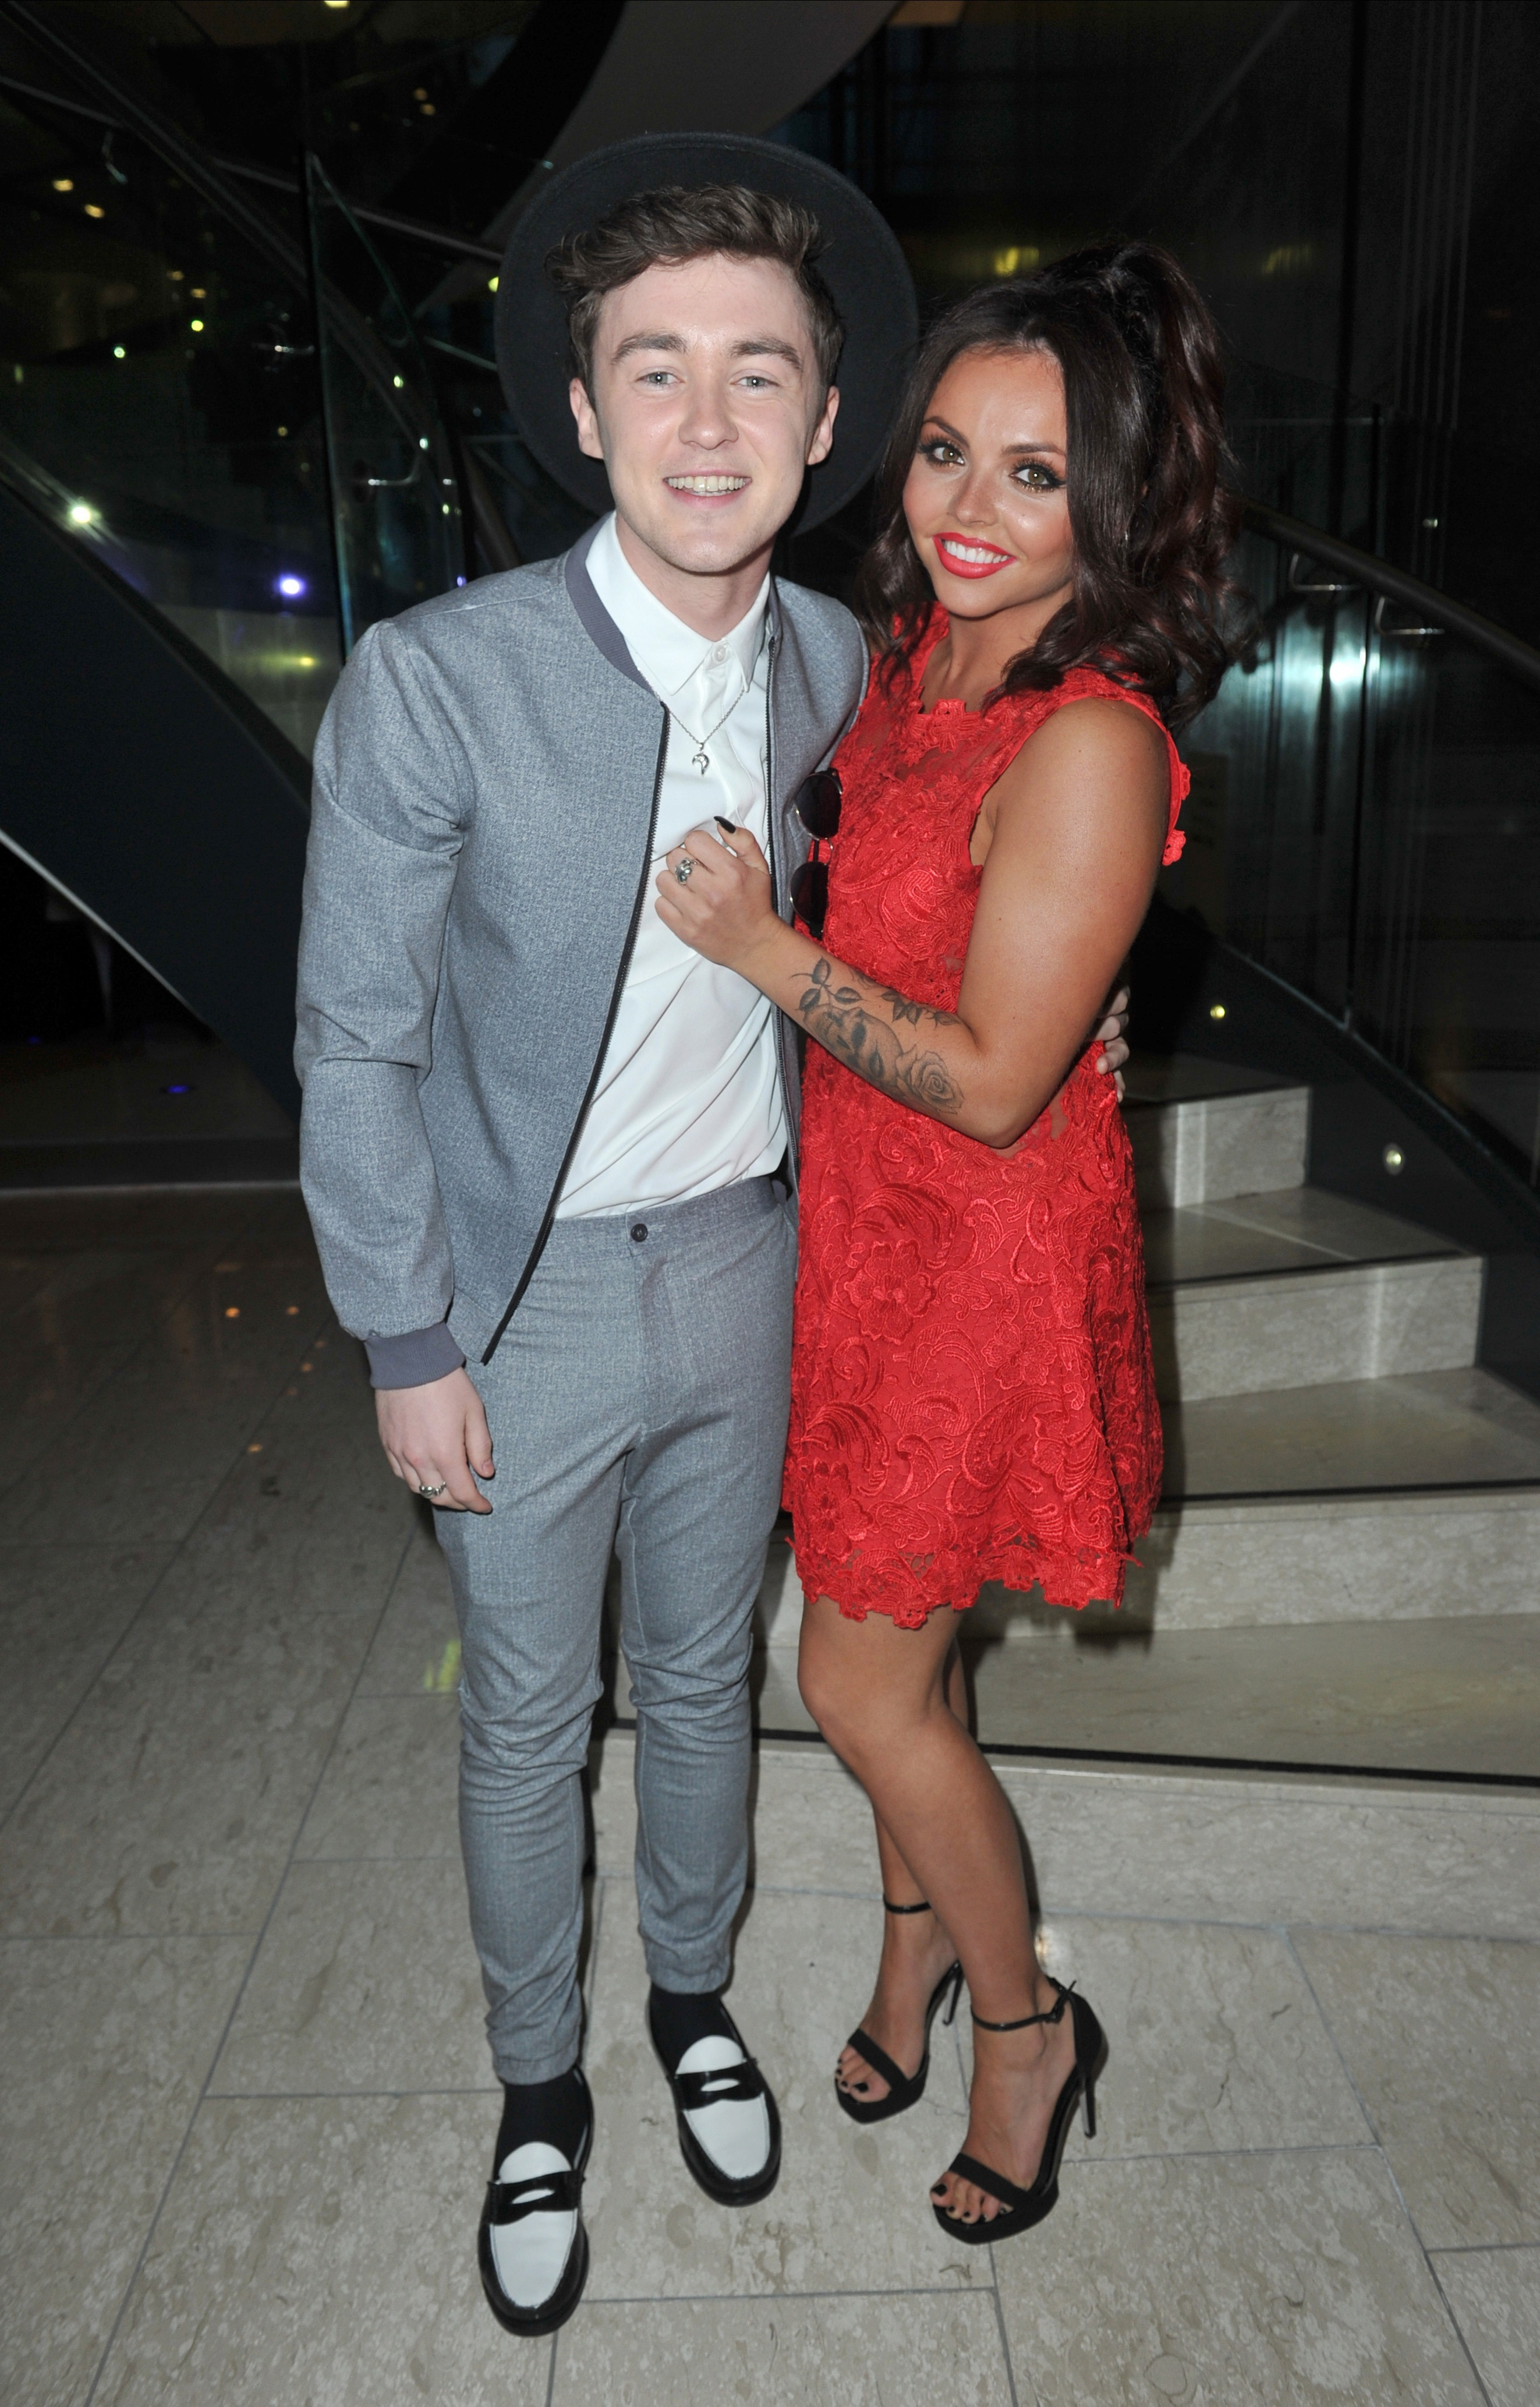 Picture Shows: Jake Roche, Jesy Nelson May 02, 2015 'Little Mix' singer Jesy Roche and boyfriend Jake Roche arrive at the Once Upon A Smile charity dinner at the Hilton Hotel in Manchester, UK. Jesy cuddled up to Jake, a member of Rixton, in a red lace mini-dress with a pair of black strappy heels. Non Exclusive WORLDWIDE RIGHTS Pictures by : FameFlynet UK © 2015 Tel : +44 (0)20 3551 5049 Email : info@fameflynet.uk.com